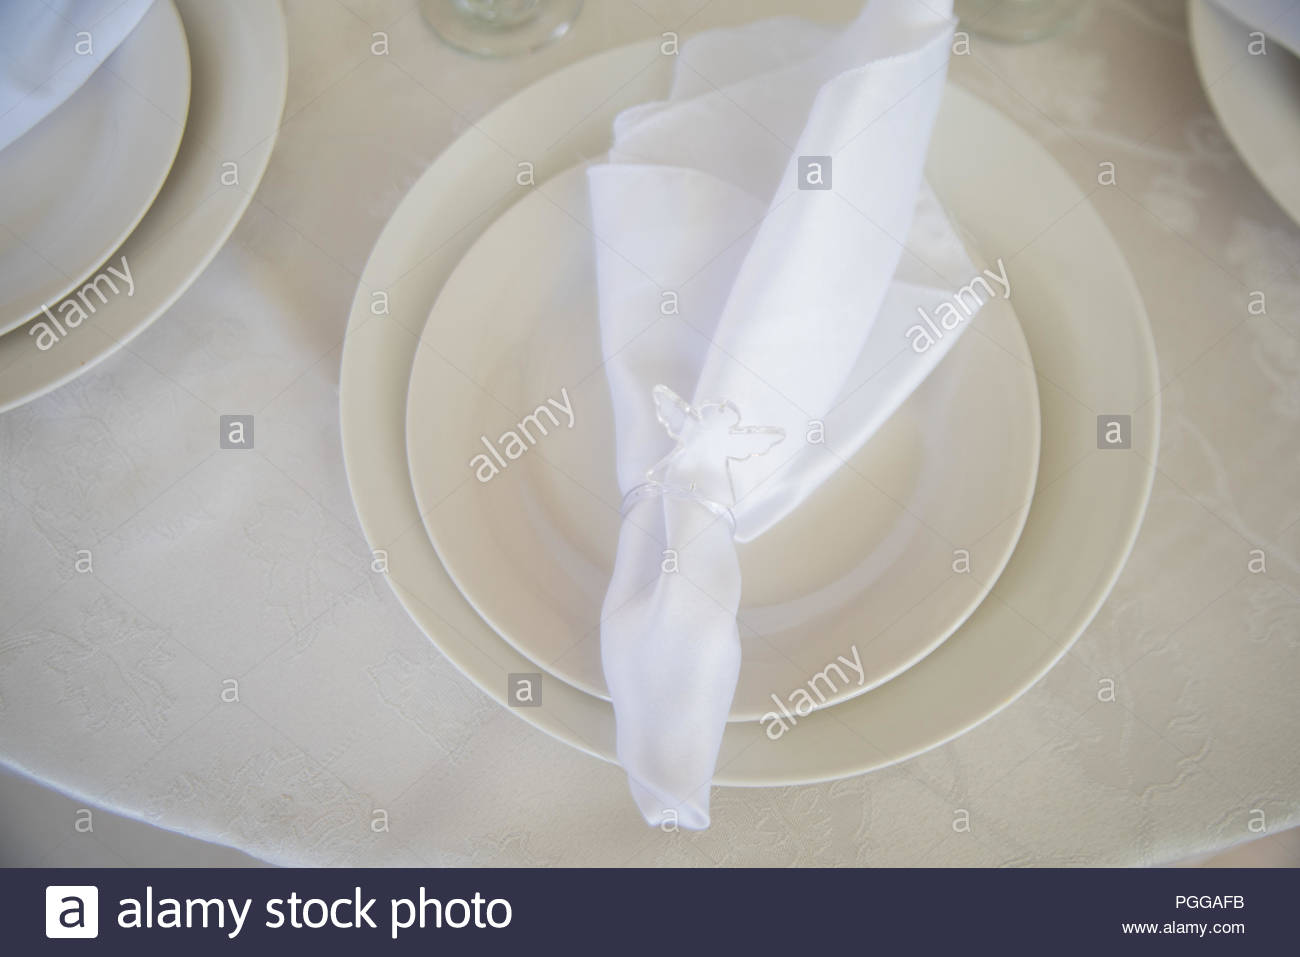 Plates for meal - Baptism - Stock Image